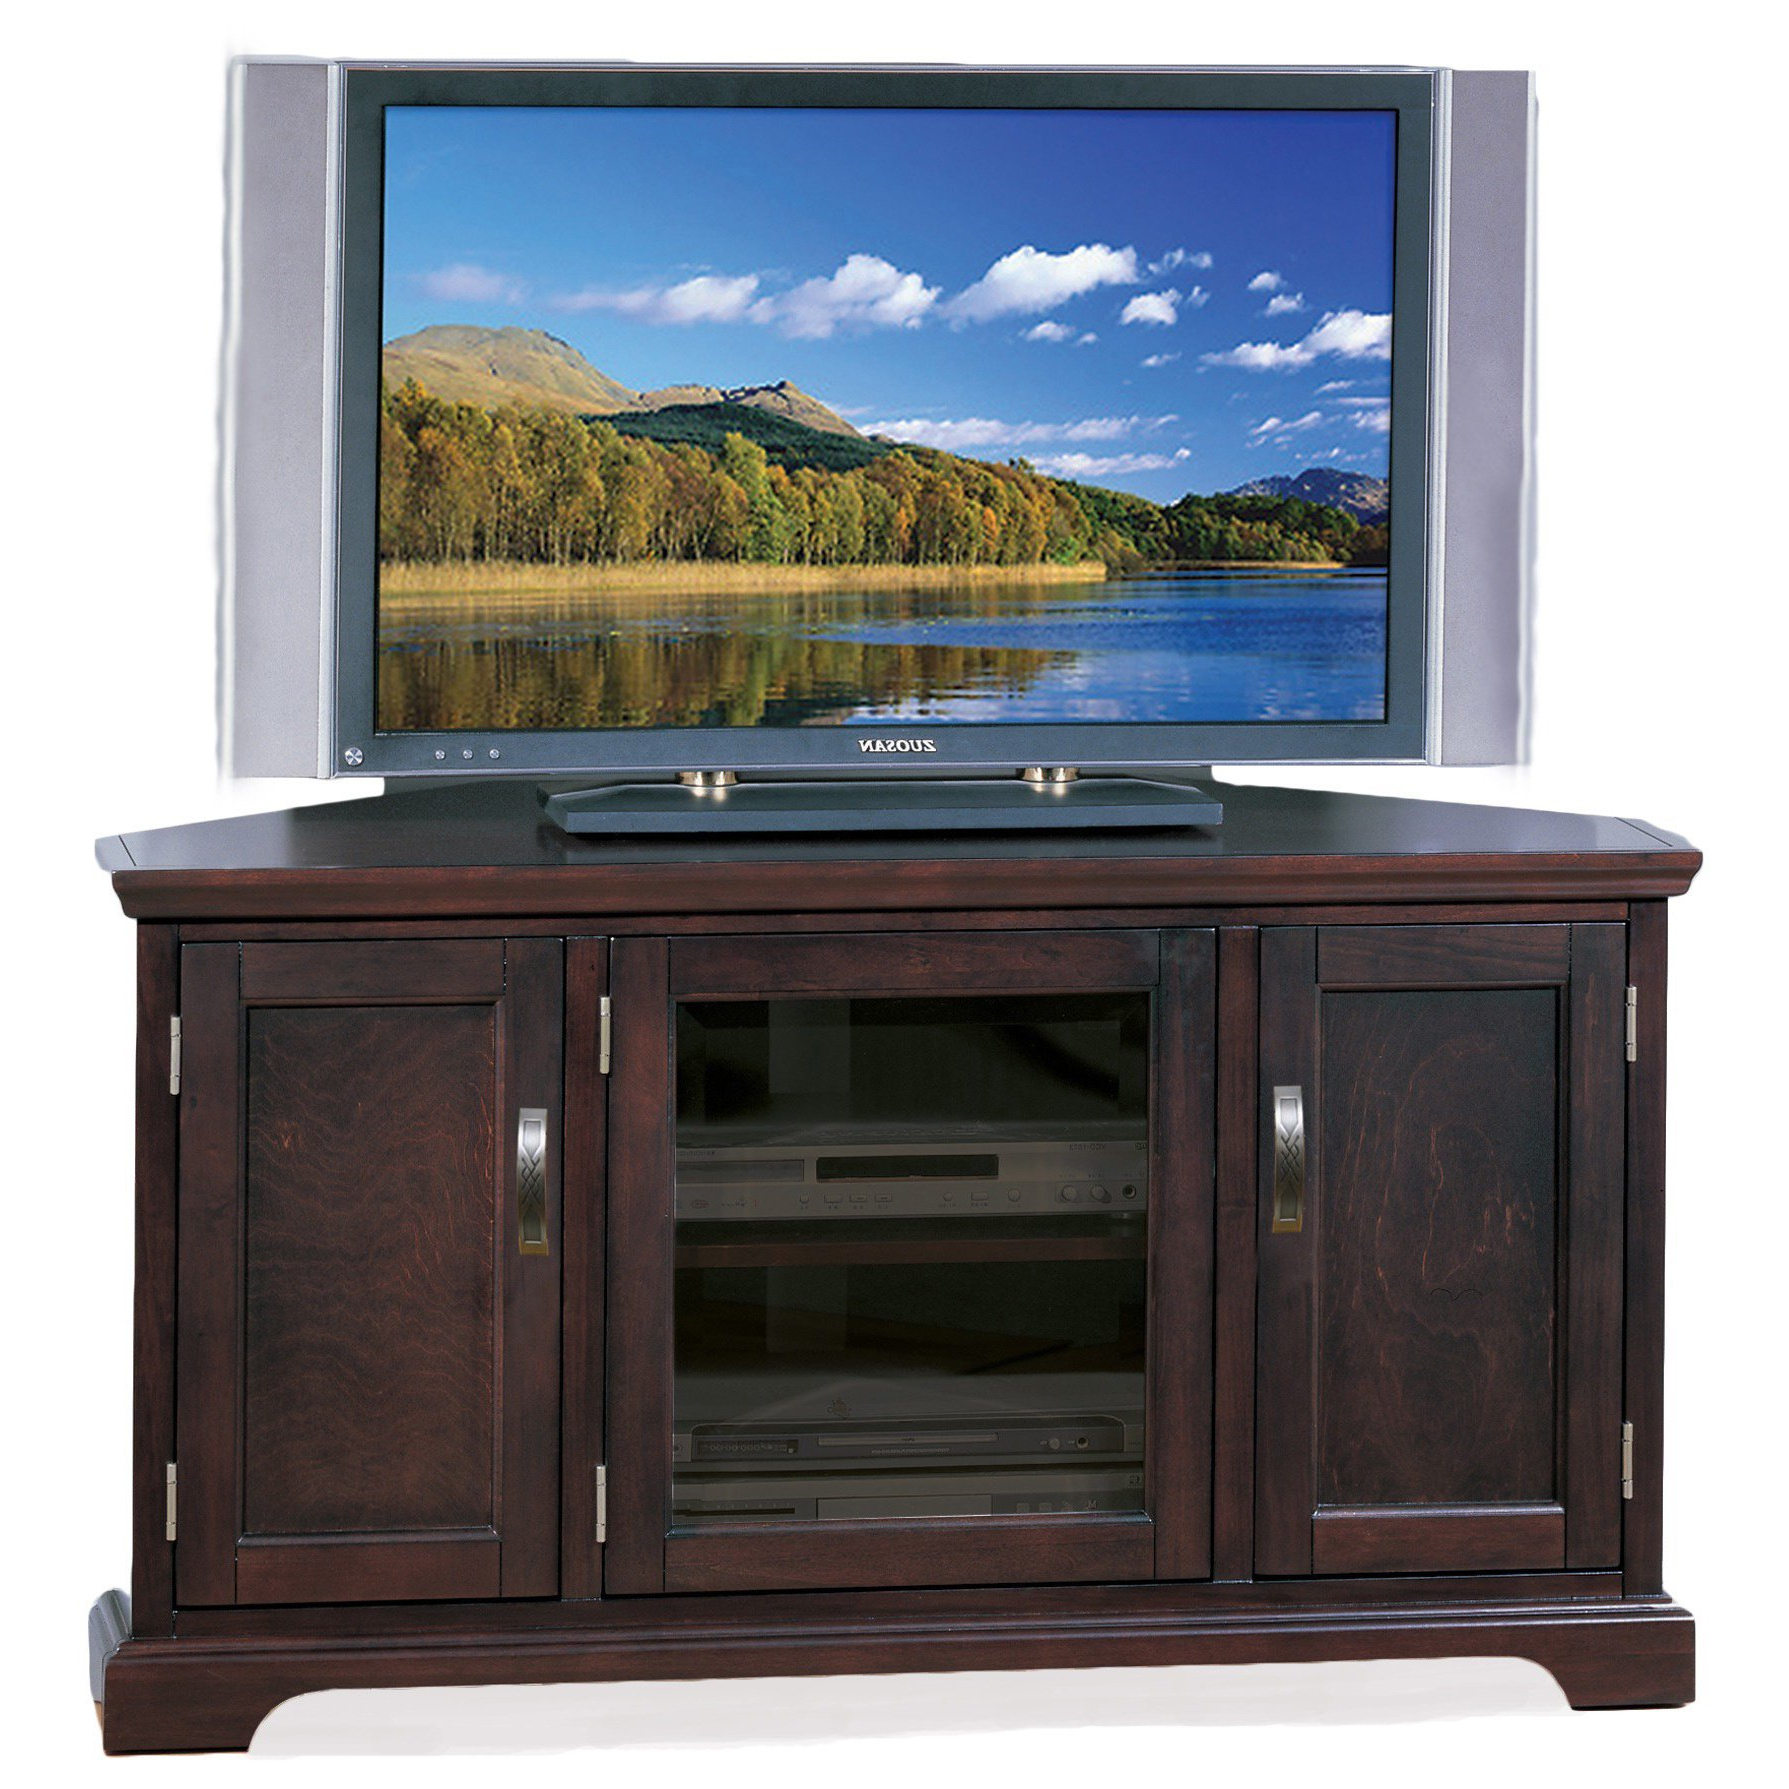 Shop Kd Furnishings Chocolate Bronze 46 Inch Corner Tv Stand & Media Intended For Well Liked Corner Tv Stands For 46 Inch Flat Screen (View 18 of 20)